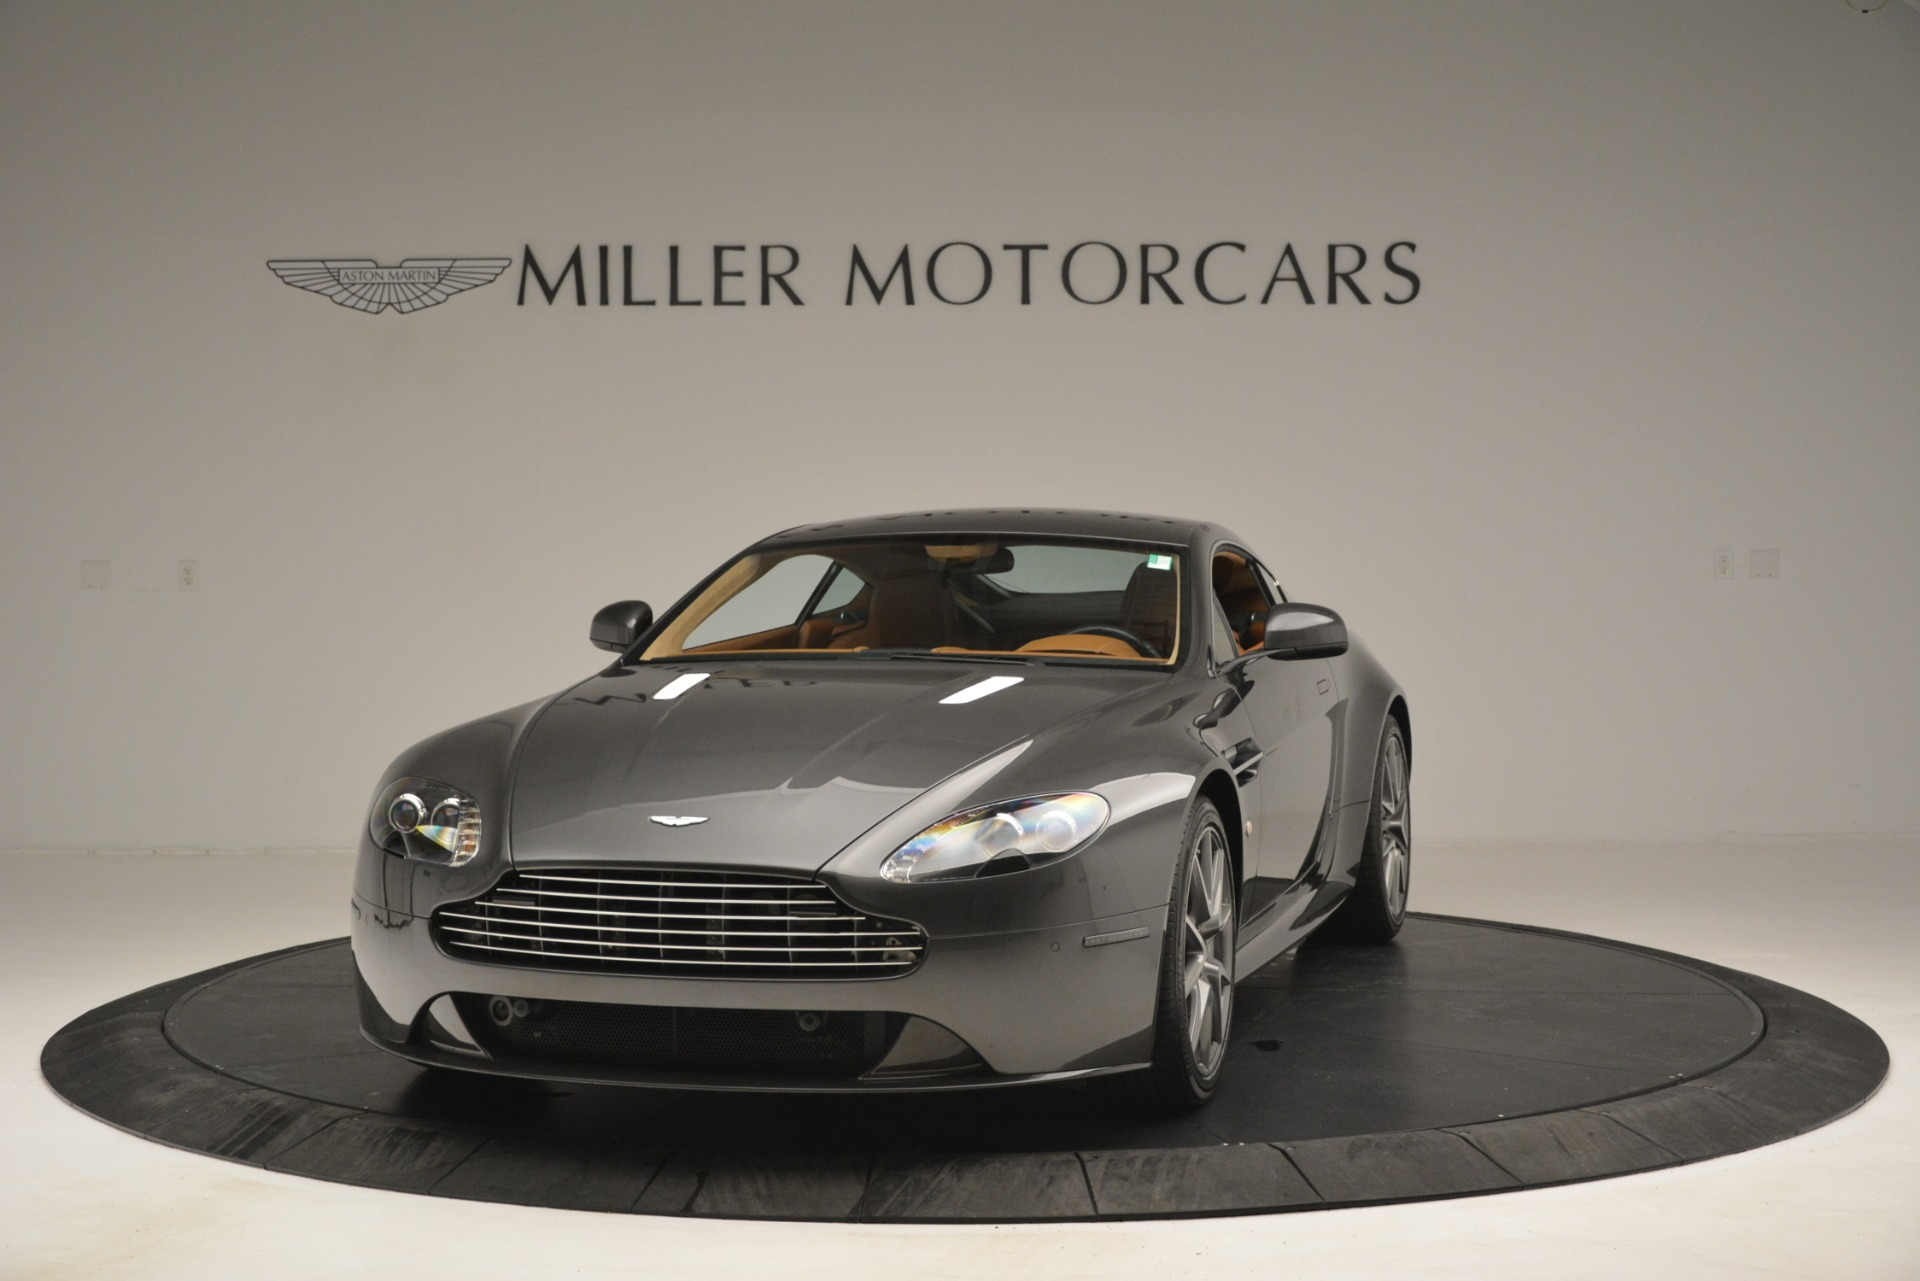 Used 2012 Aston Martin V8 Vantage S Coupe for sale Sold at Maserati of Greenwich in Greenwich CT 06830 1